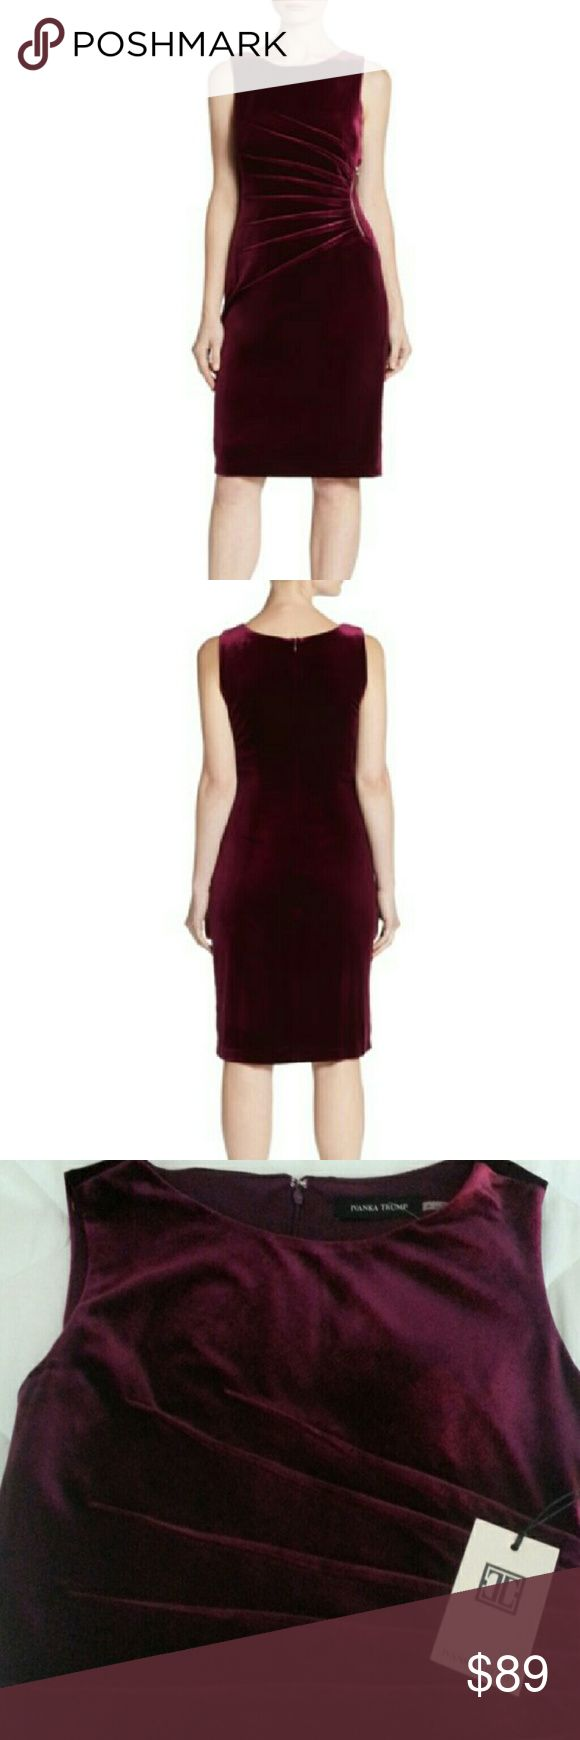 Ivanka Trump Plum Velvet Dress Soft Velvet dress with a burst of pleats and a zipper accent. Roundneck and concealed back zipper. Fully lined.   Brand new with tags.  90% Polyester 10% Spandex Ivanka Trump Dresses